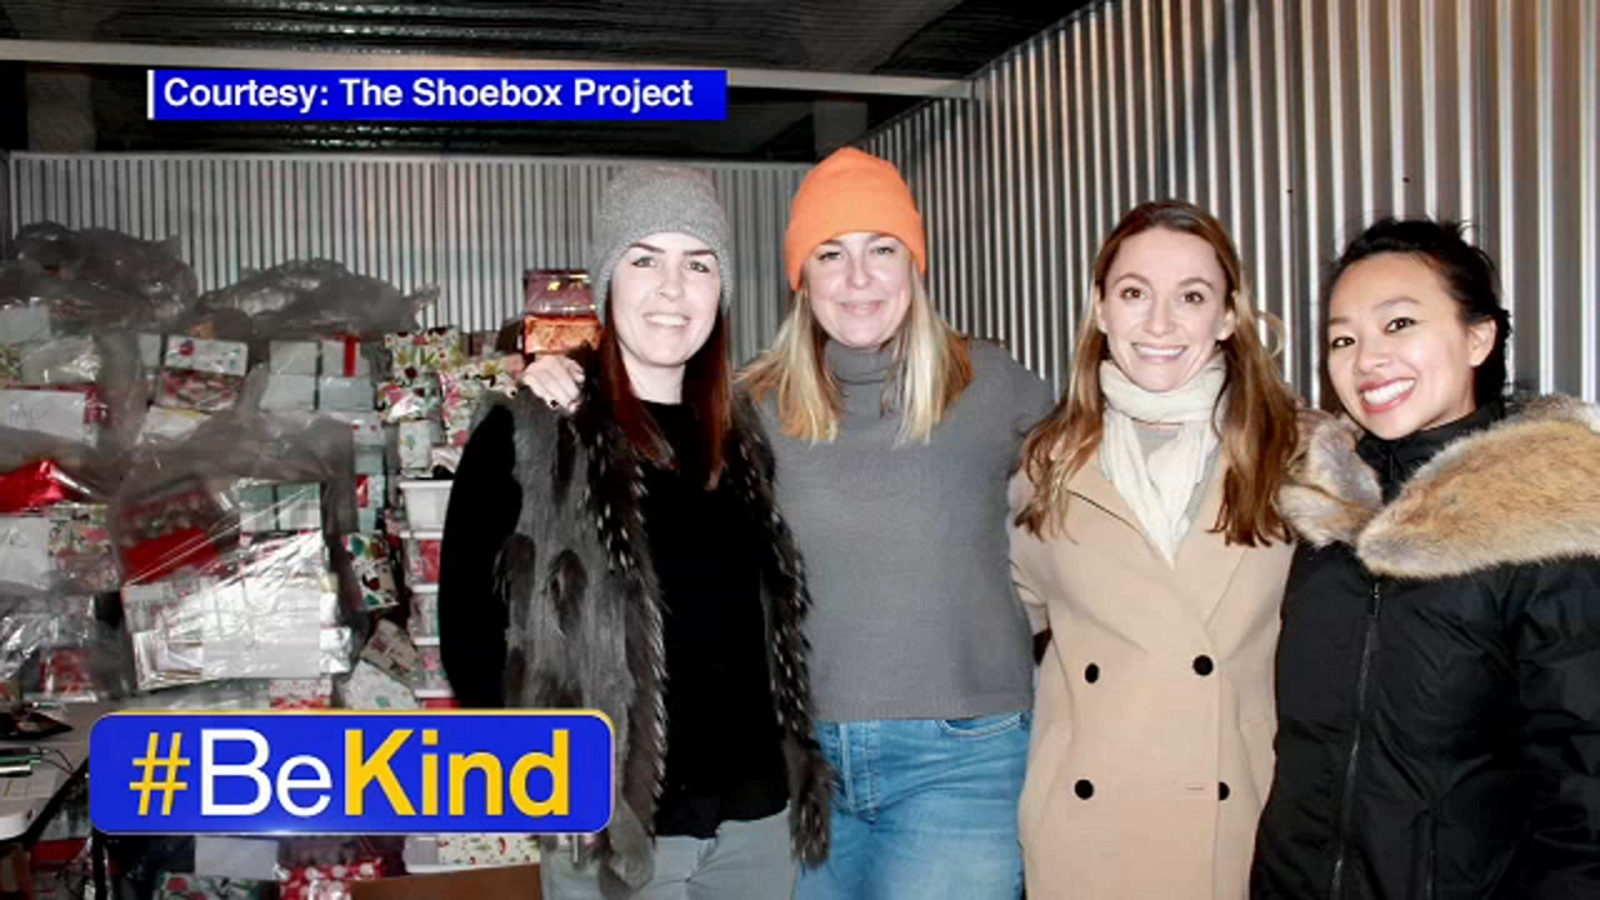 Be Kind: Volunteer group donates gift-filled shoe boxes to New York homeless women